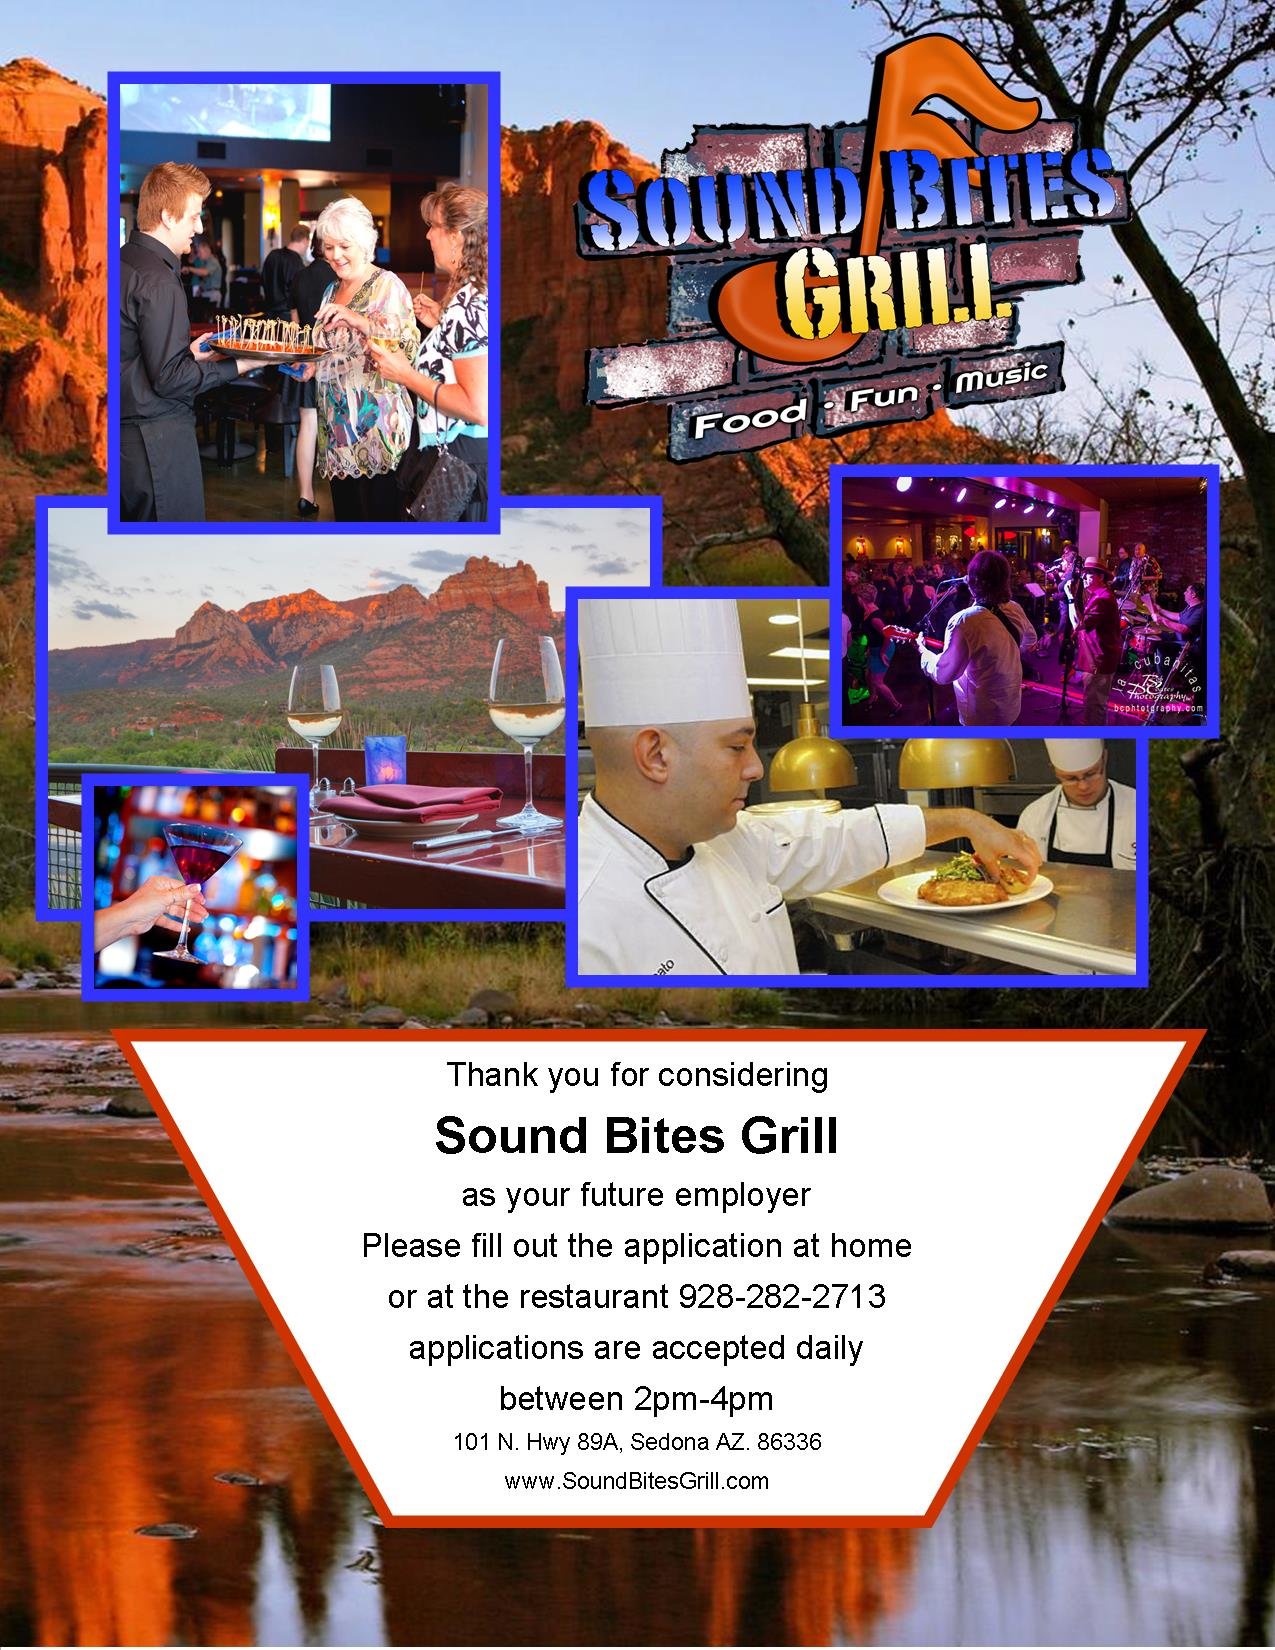 Wlecome to Sound Bites Grill Emolyment